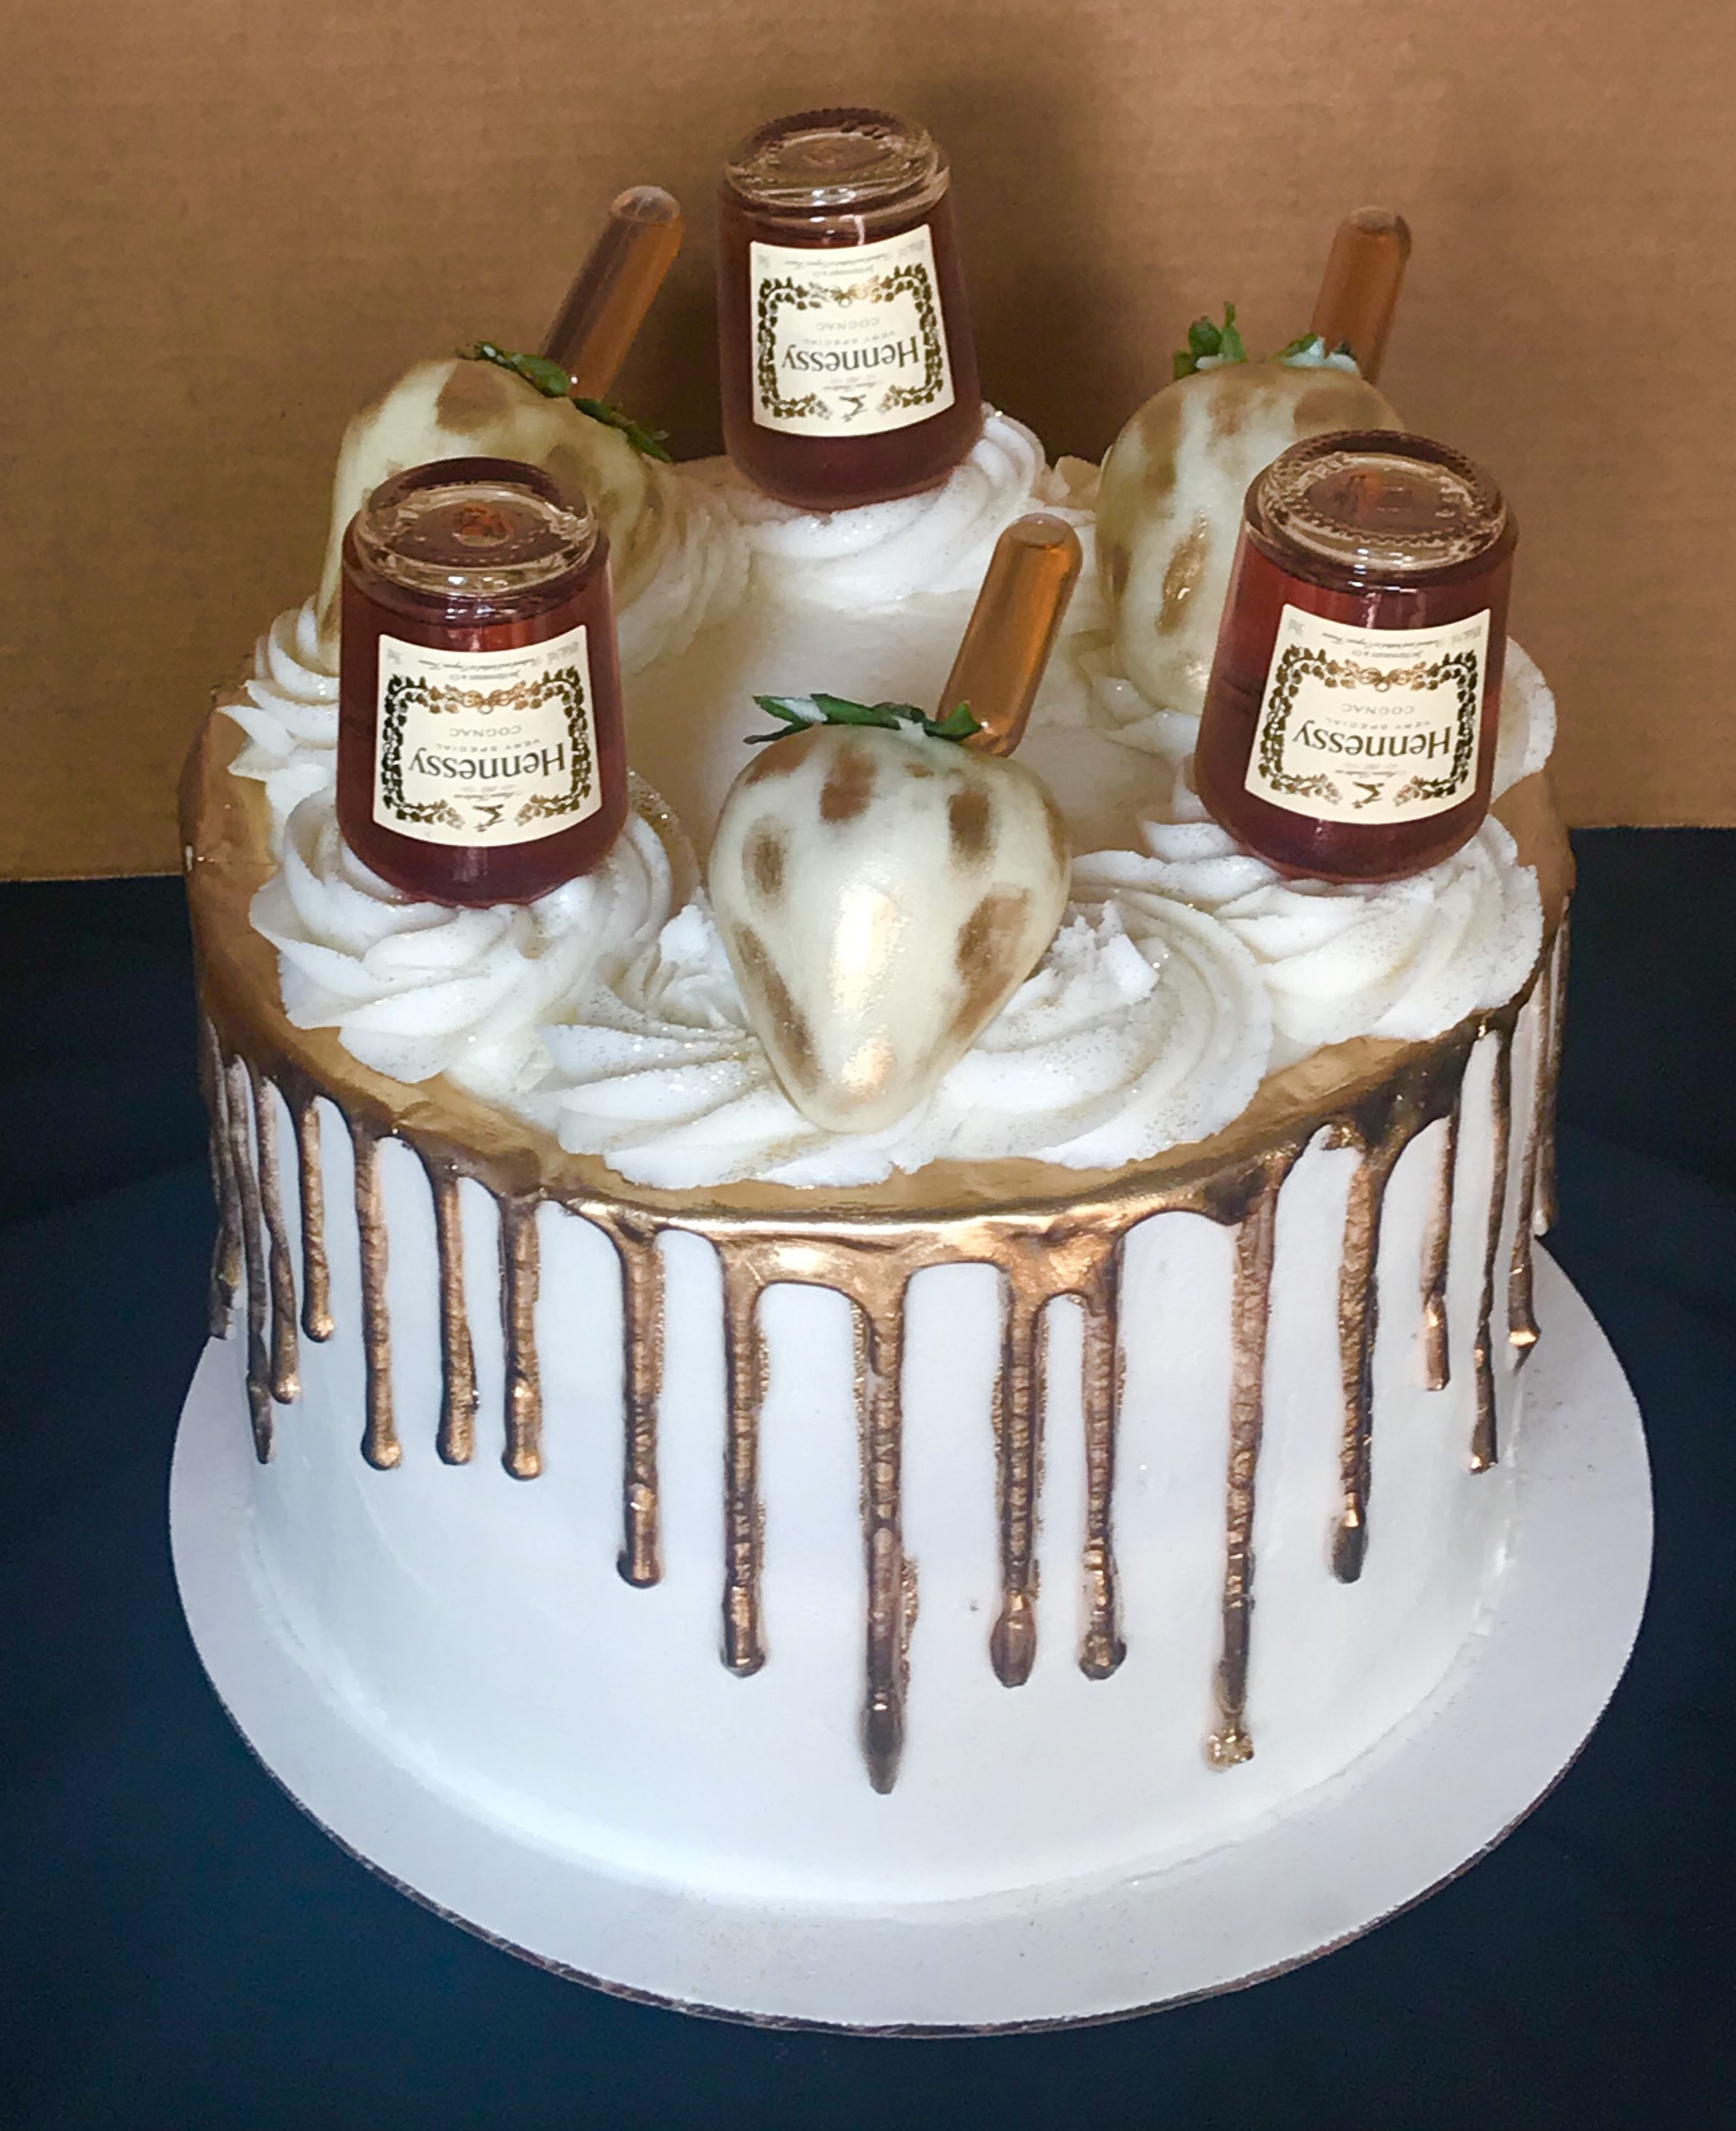 Hennessy infused into cake buttercream and strawberries